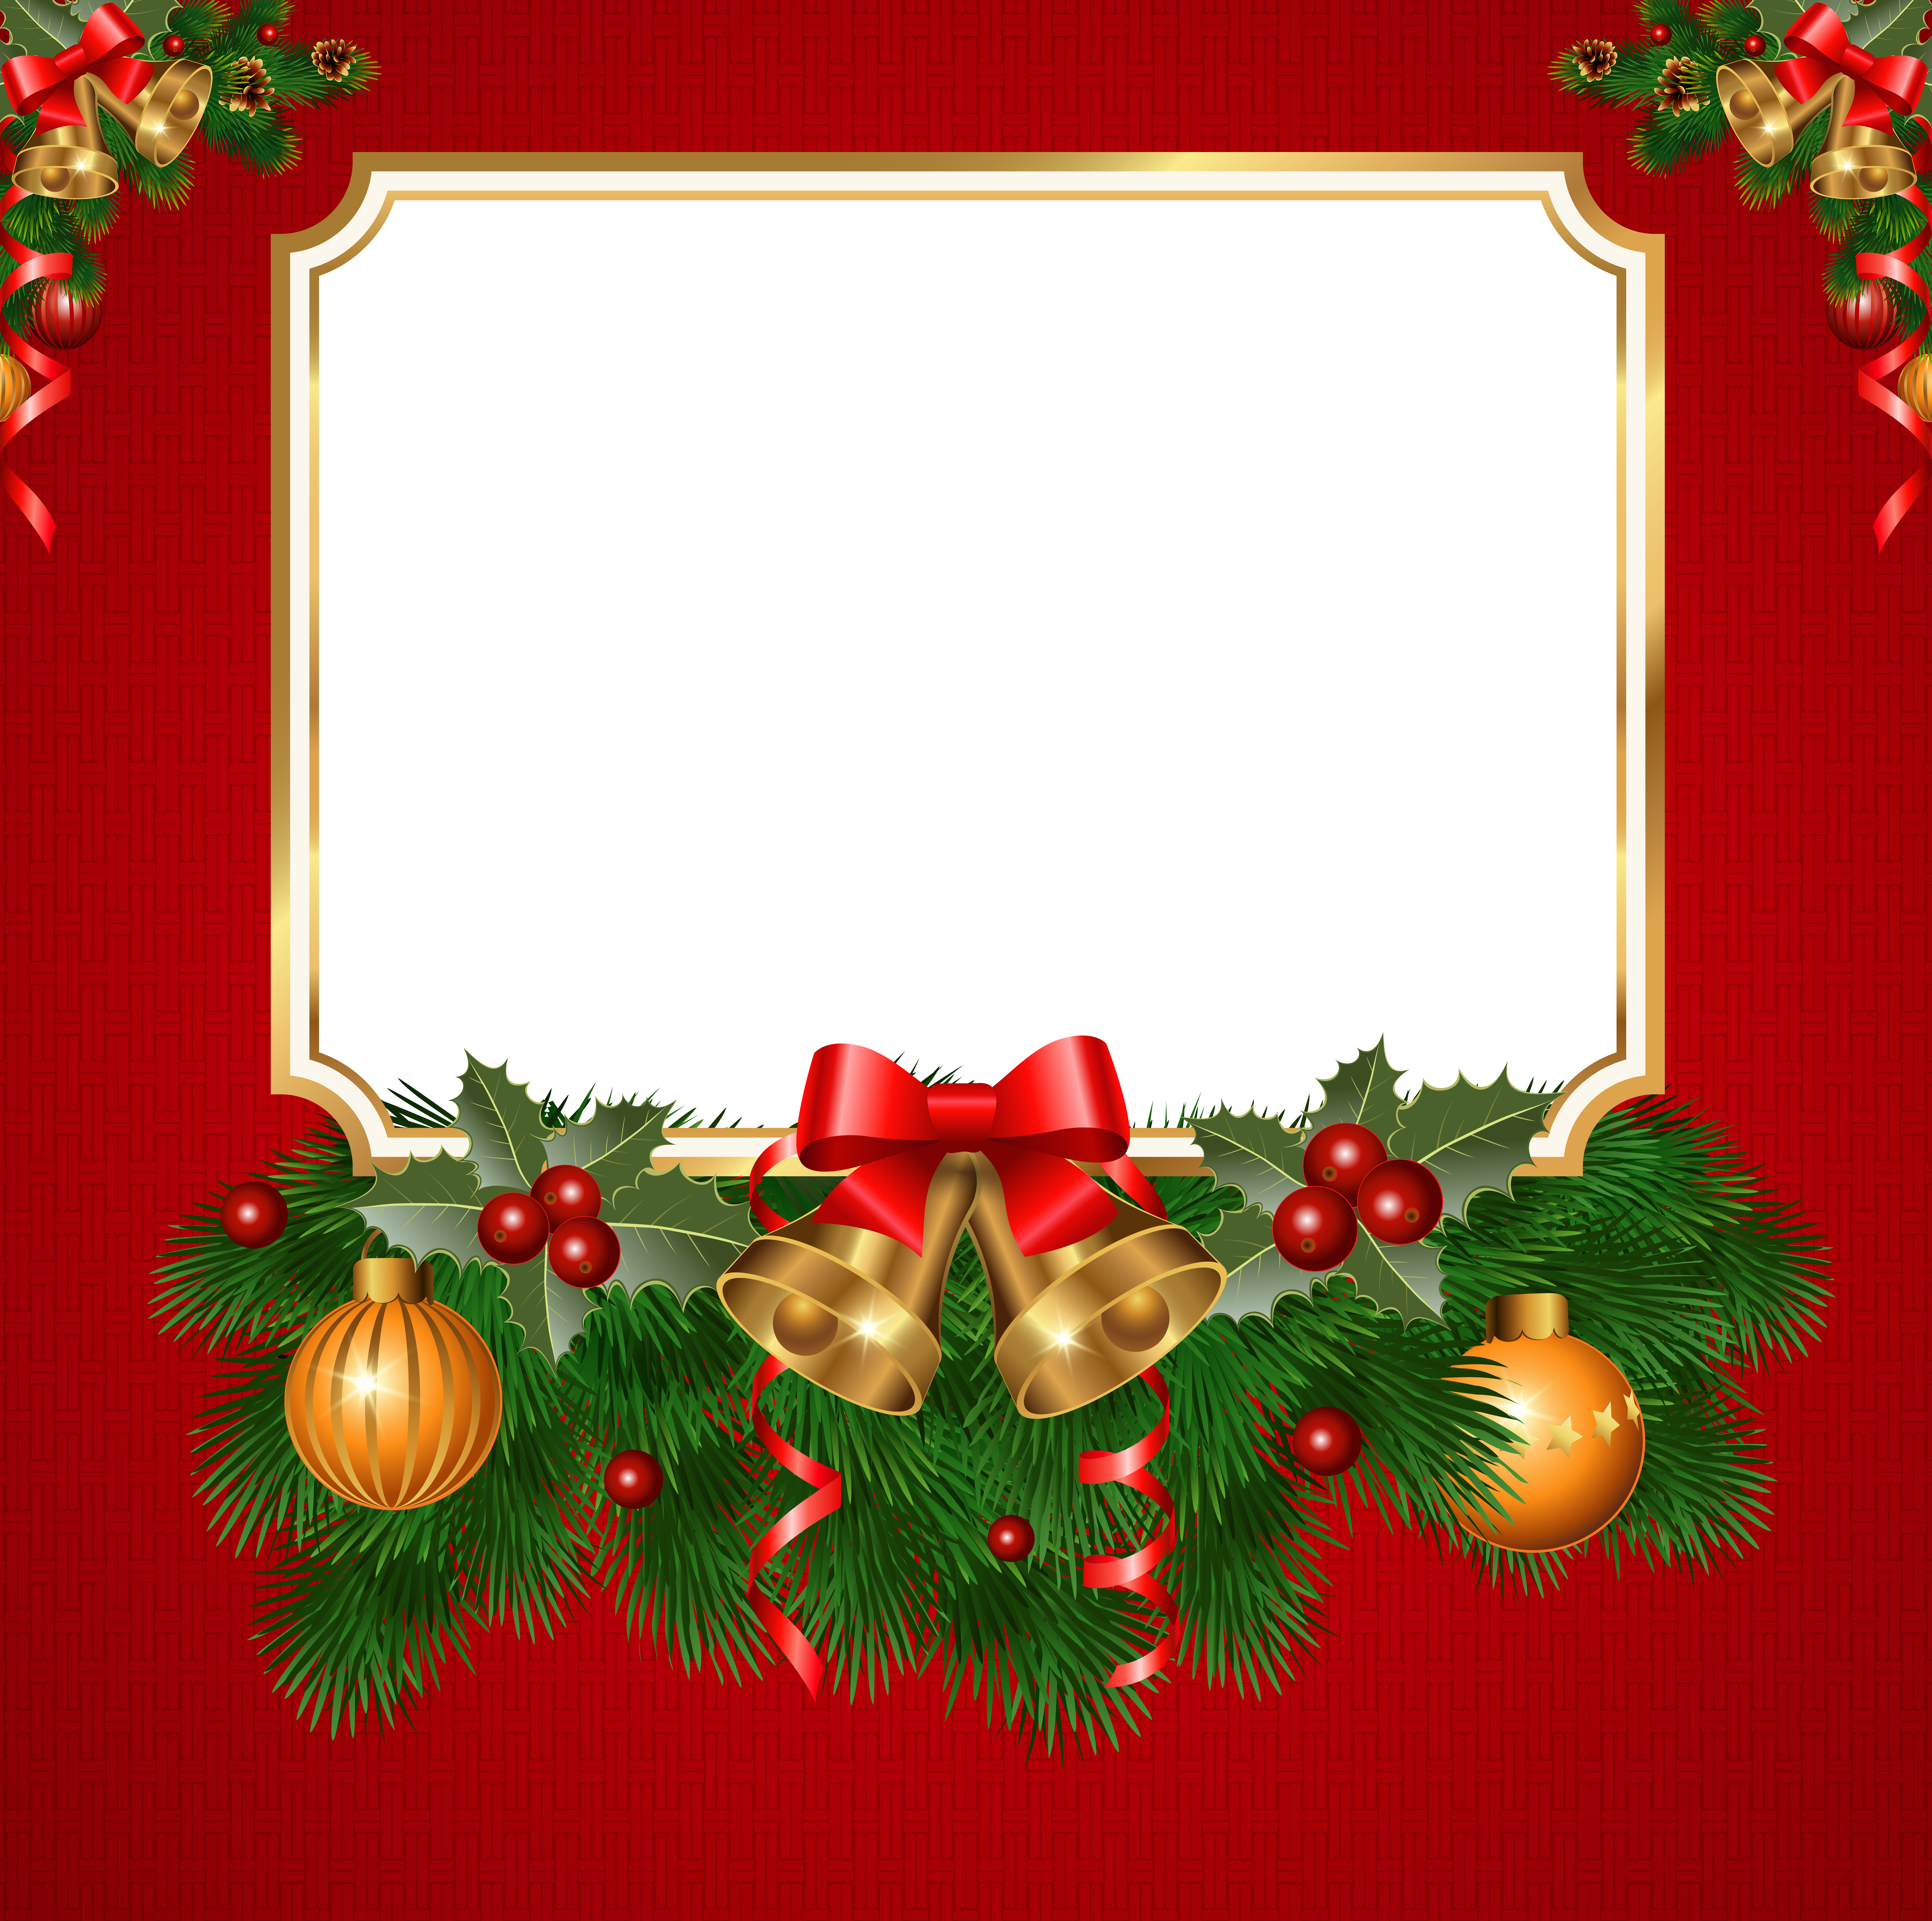 Snowflake and christmas tree border clipart png royalty free Christmas Transparent Red PNG Frame | Christmas | Pinterest ... png royalty free